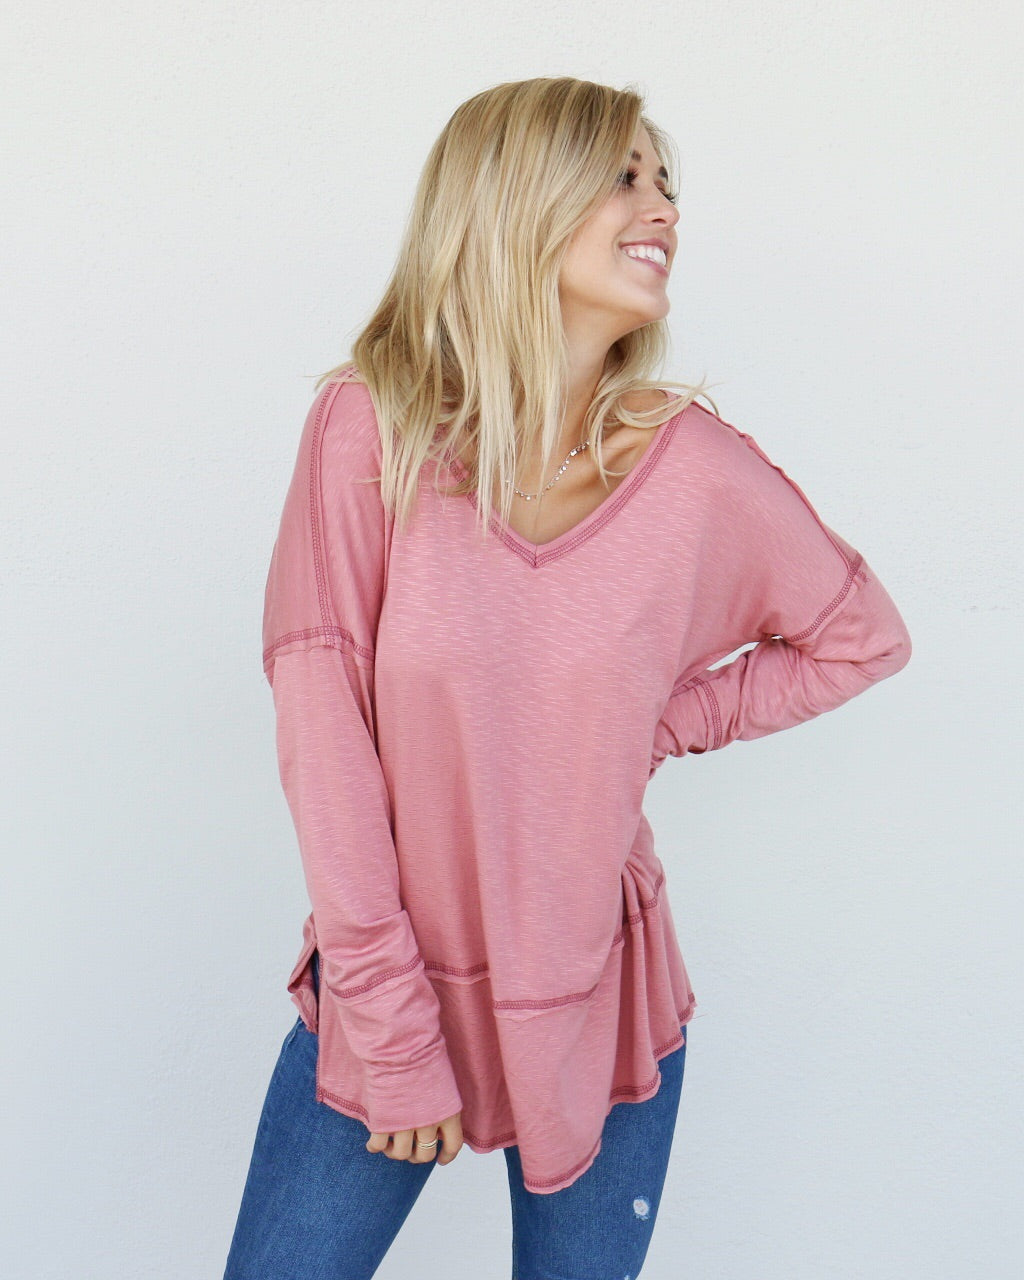 Eureka Top in Pink